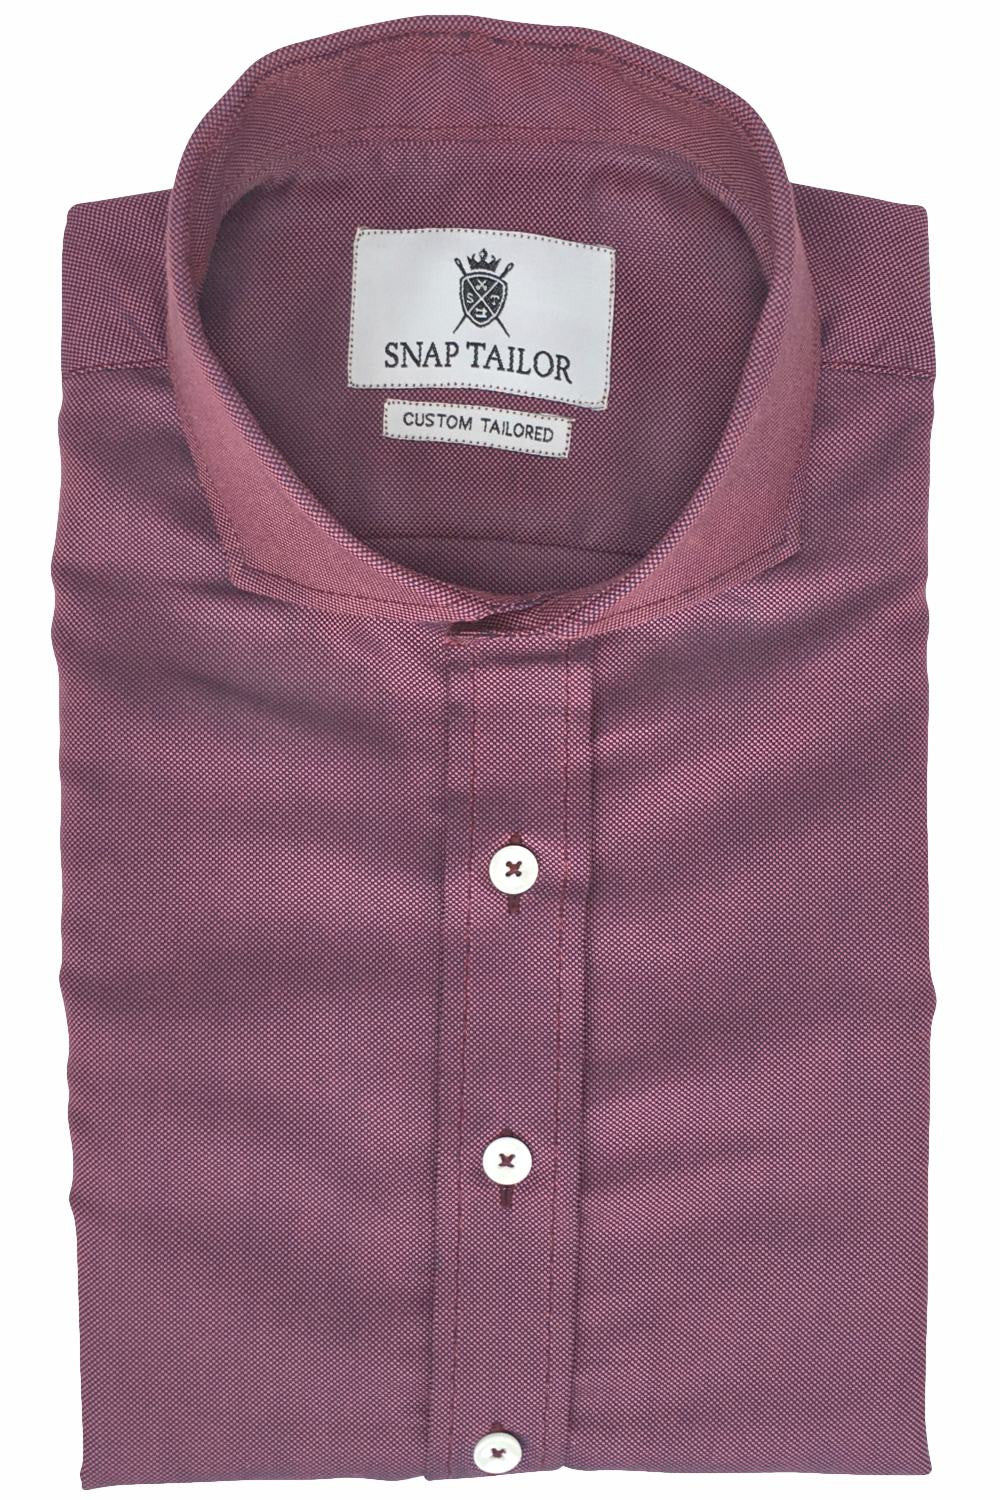 Photo of Non-Iron Basket Weave Casual Shirt in Pink and Blue